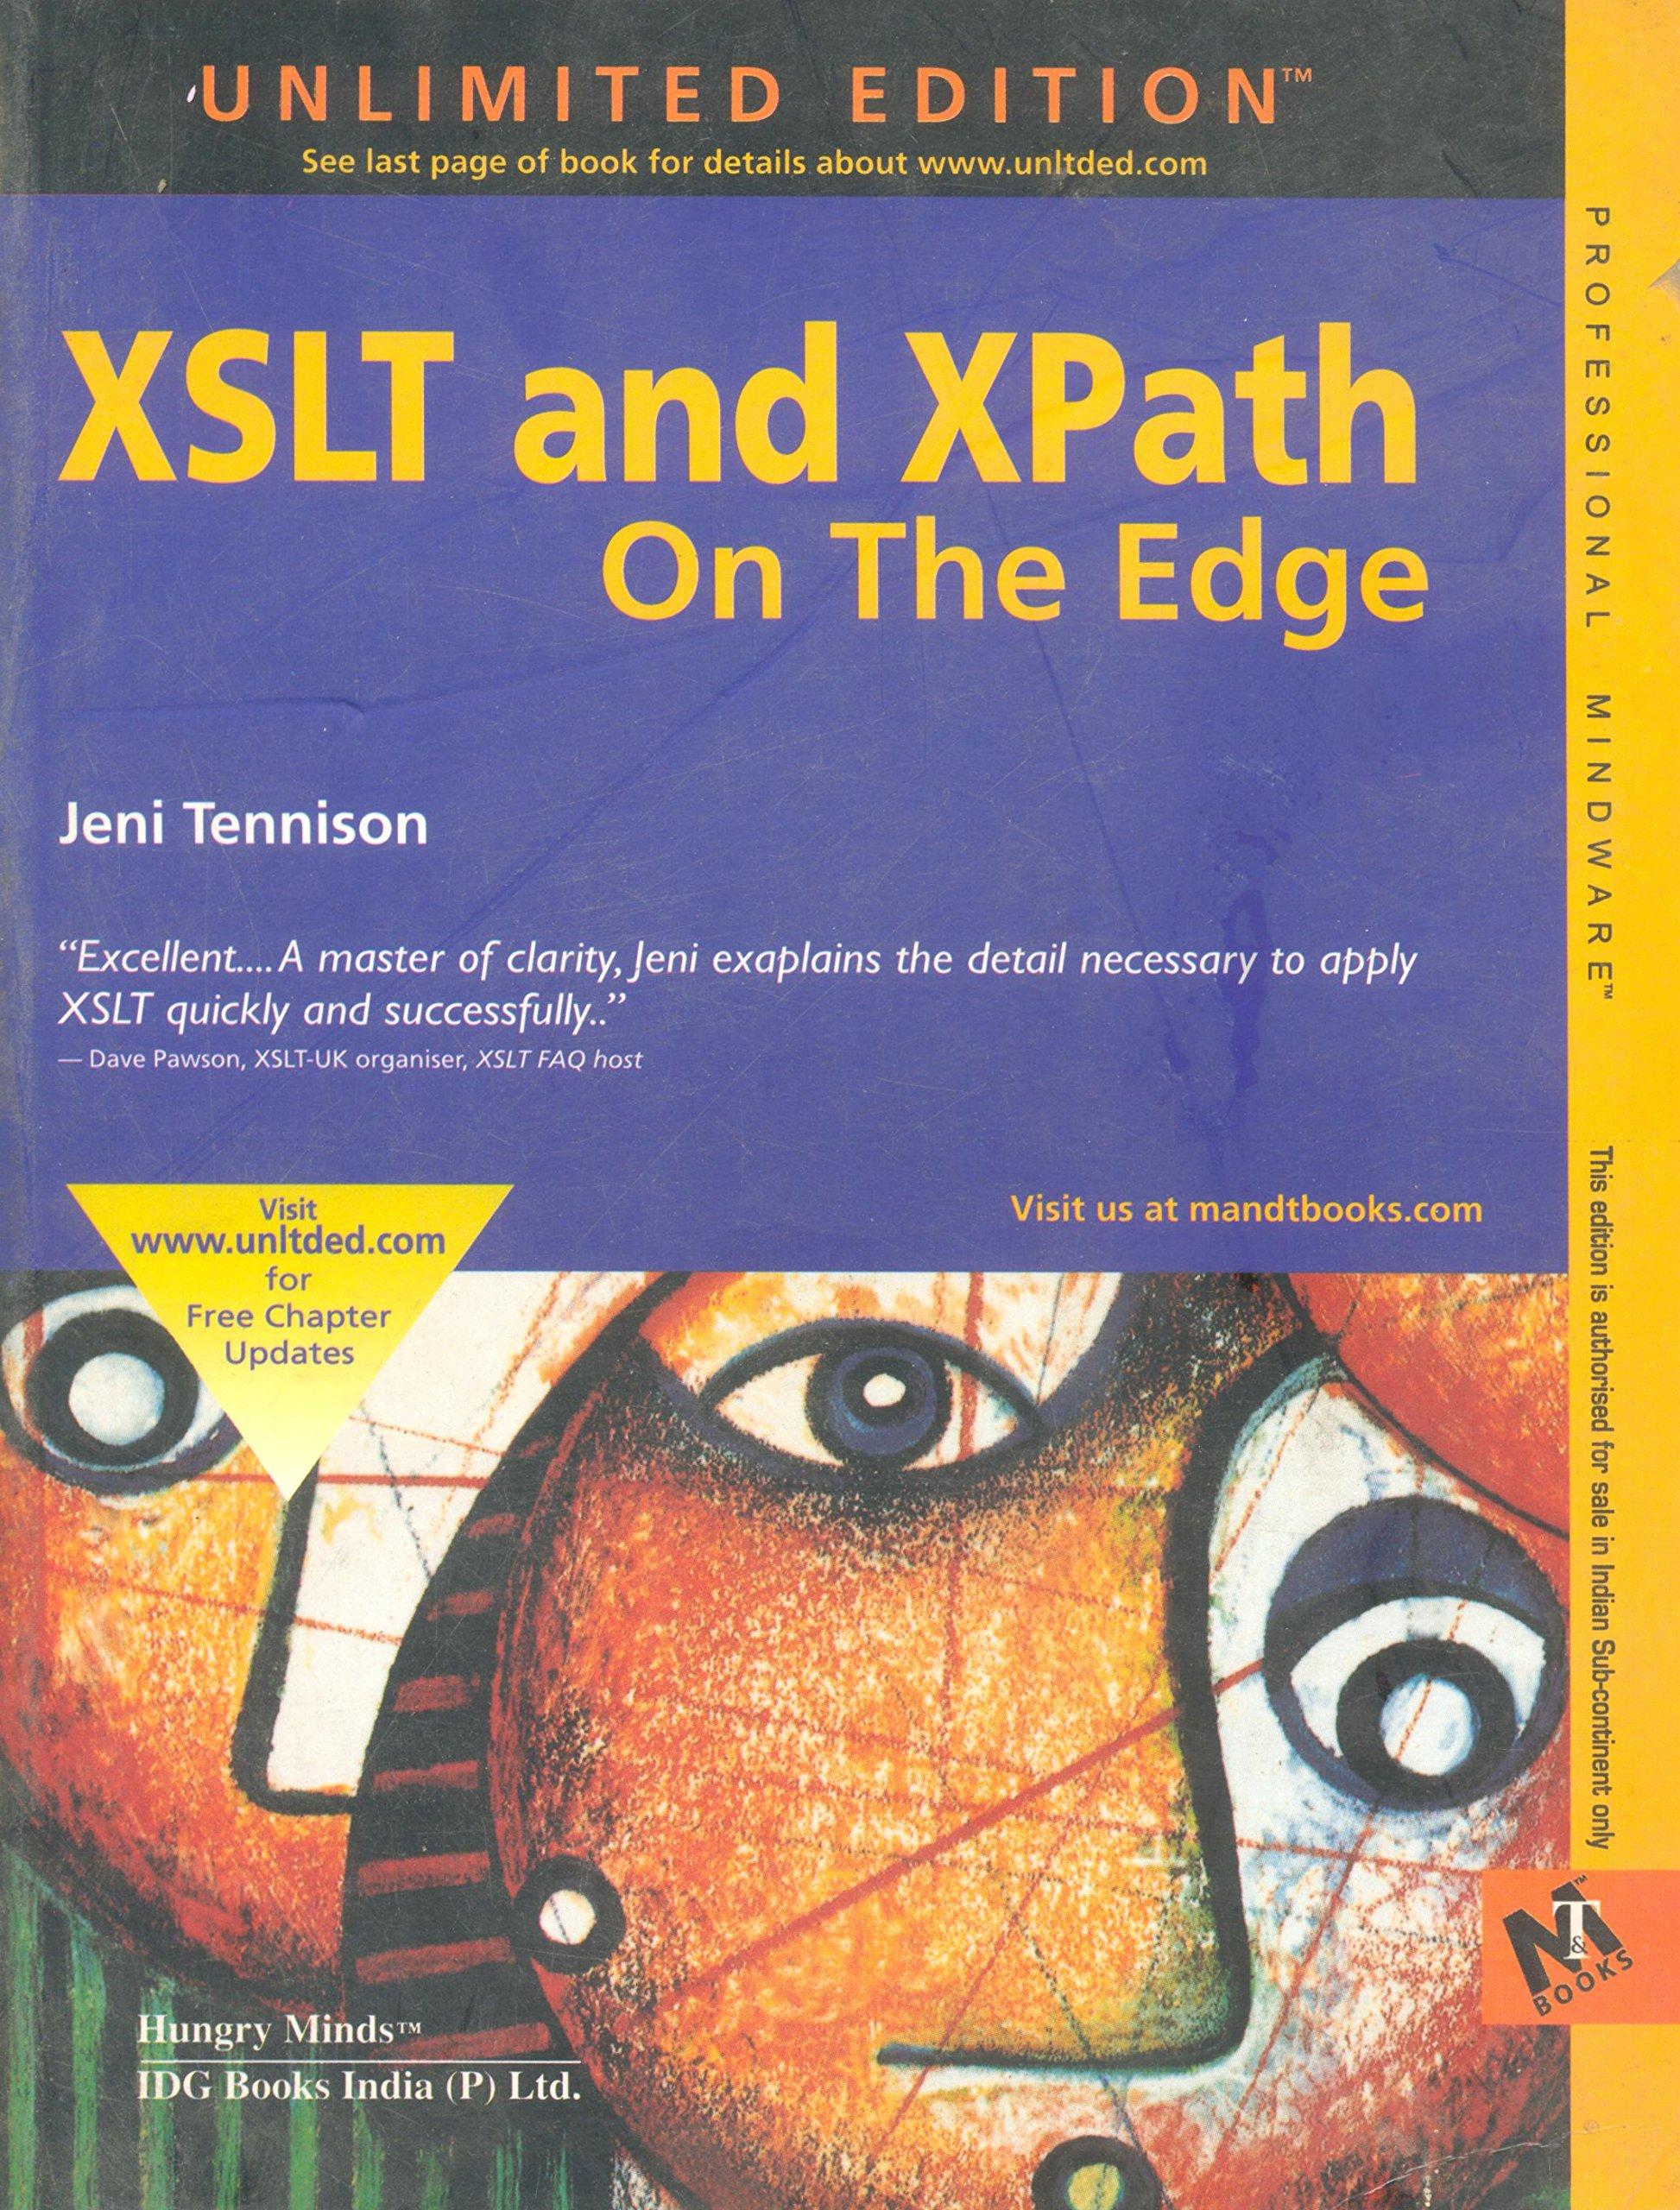 [(XSLT and XPath on the Edge (Unlimited Edition))] [by: Jeni Tennison]:  Amazon.co.uk: 9788126502370: Books